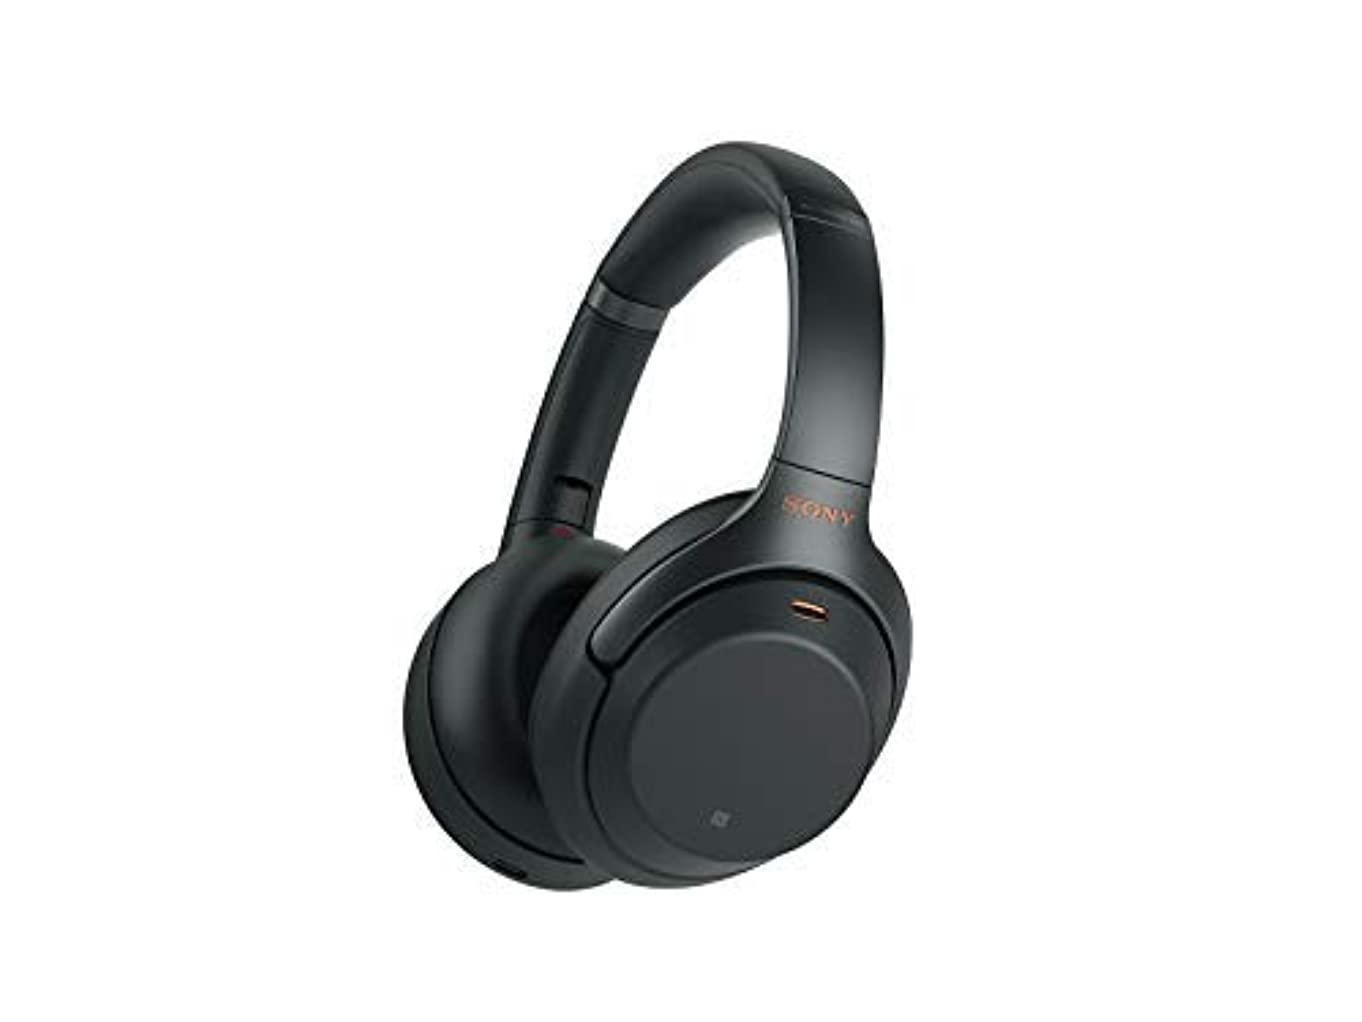 制約図マルクス主義者Sony Noise Cancelling Headphones WH1000XM3: Wireless Bluetooth Over the Ear Headphones with Mic and Alexa voice control - Industry Leading Active Noise Cancellation - Black [並行輸入品]